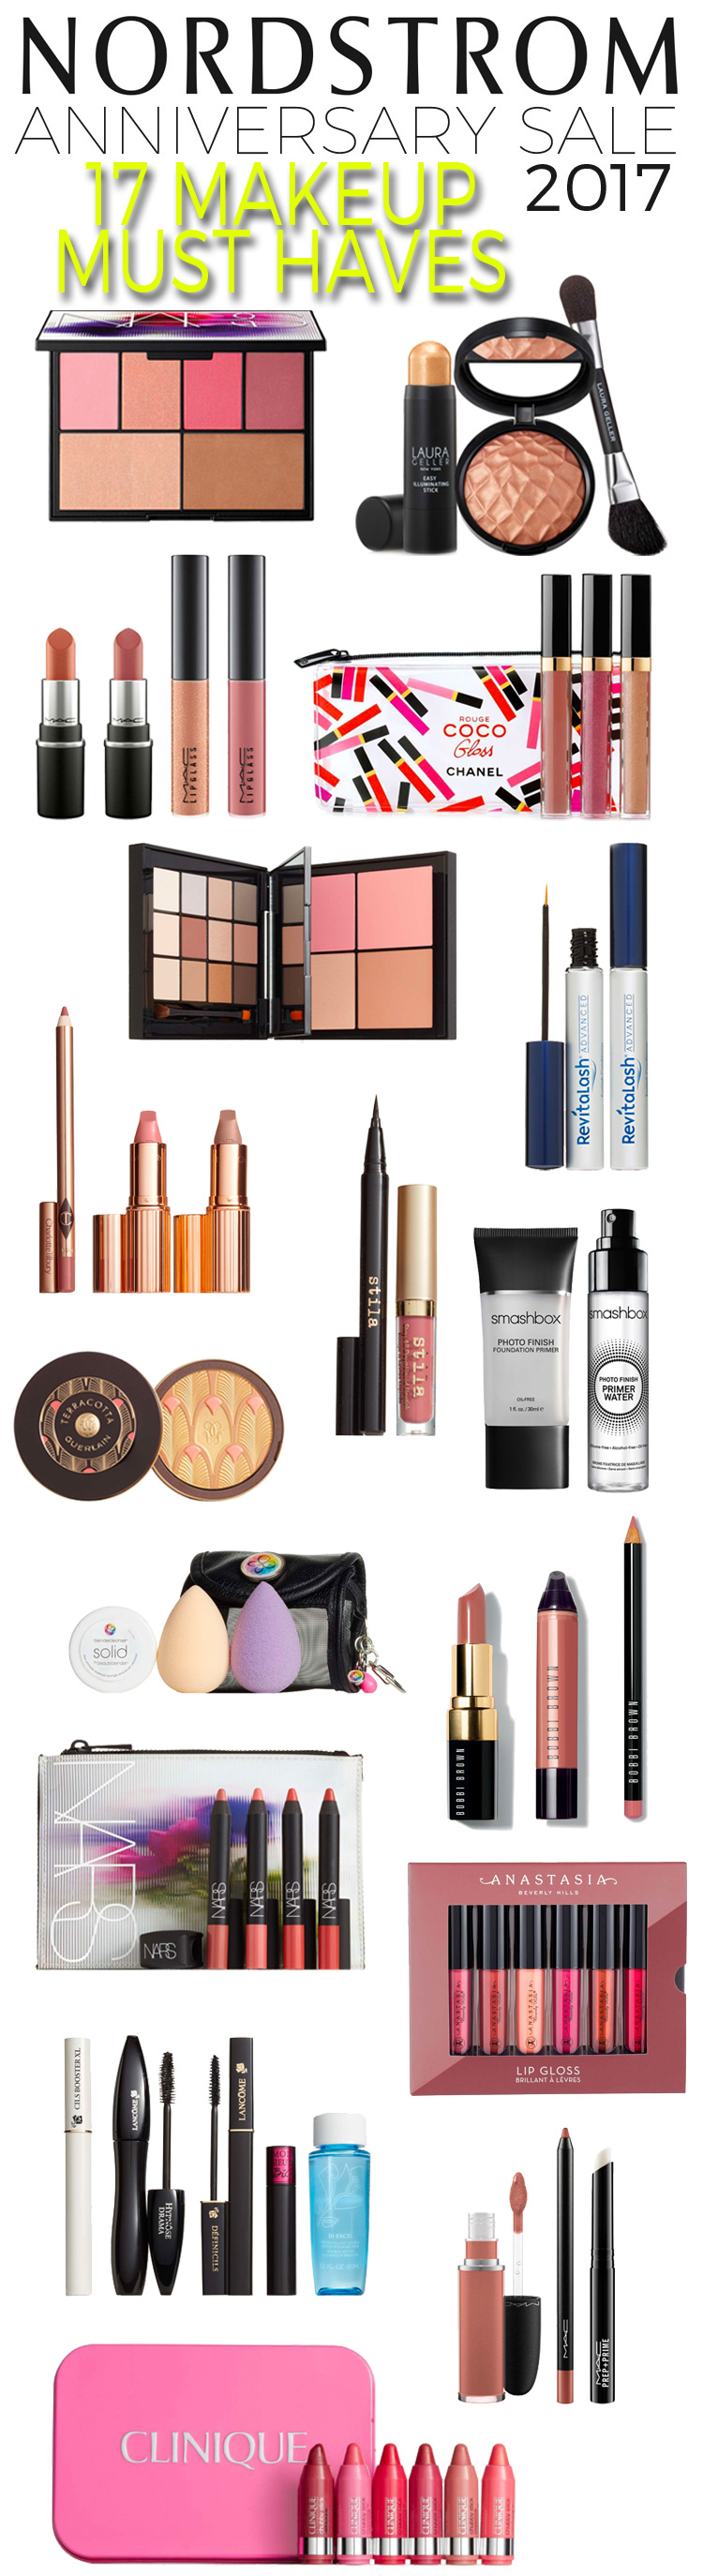 Nordstrom Anniversary Sale 2017: 17 Makeup Must Haves